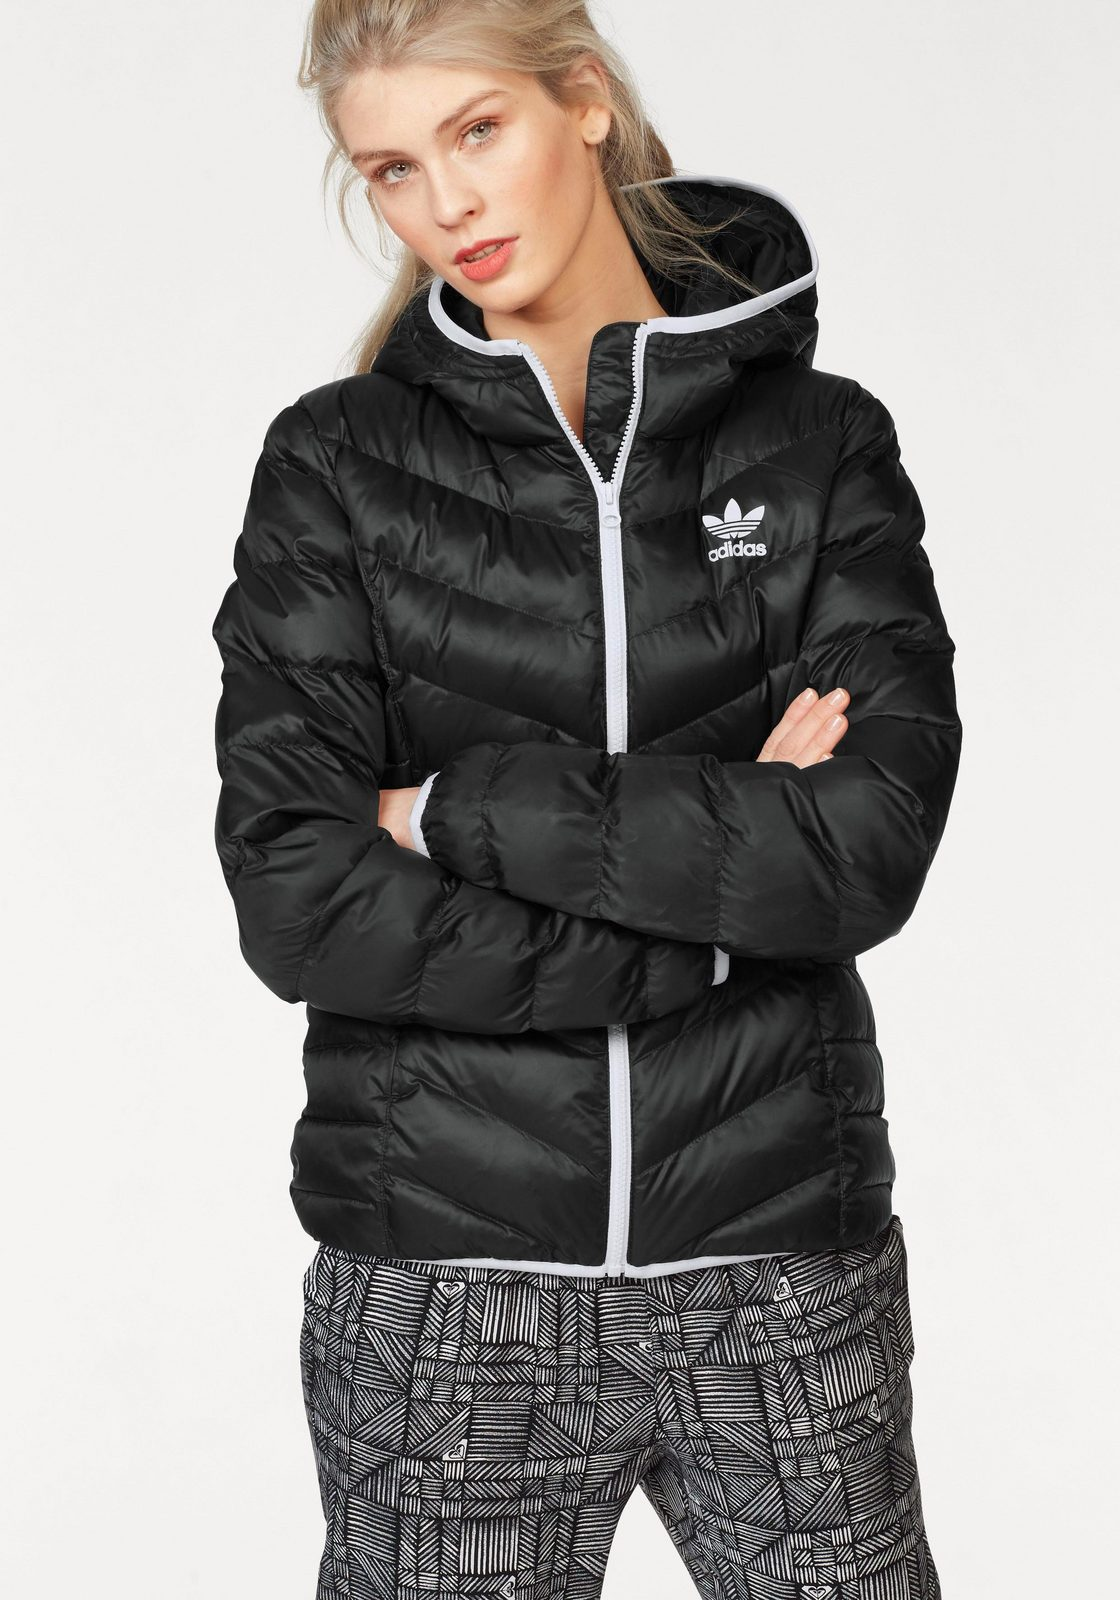 adidas Originals Steppjacke »SLIM JACKET«, Warm wattiert